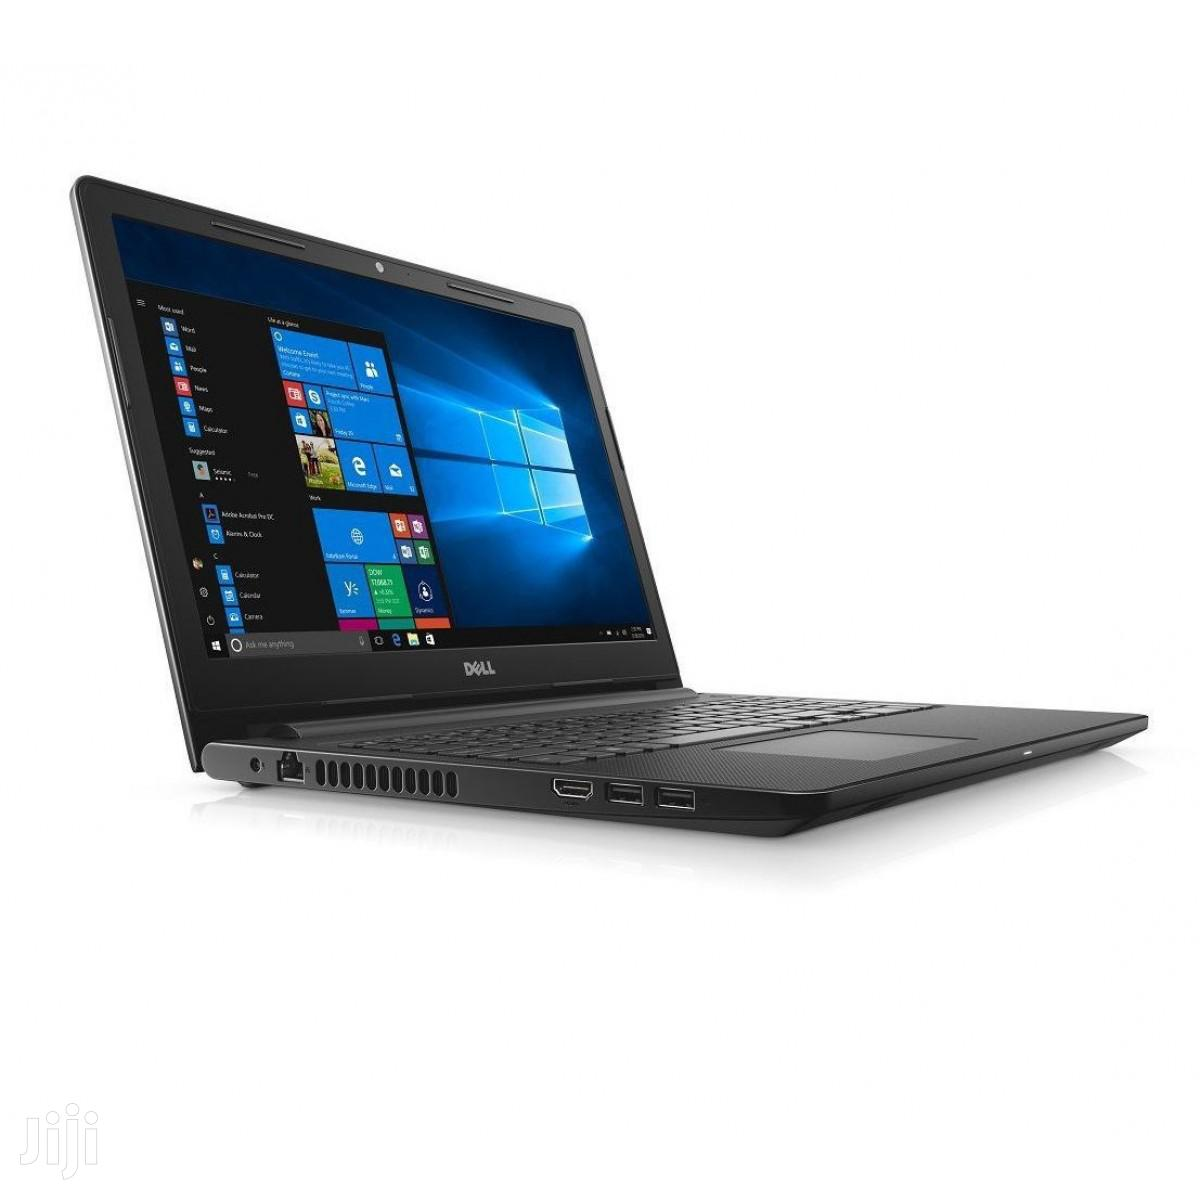 New Laptop Dell Inspiron 15 3567 8GB Intel Core I3 HDD 1T | Laptops & Computers for sale in Kampala, Central Region, Uganda